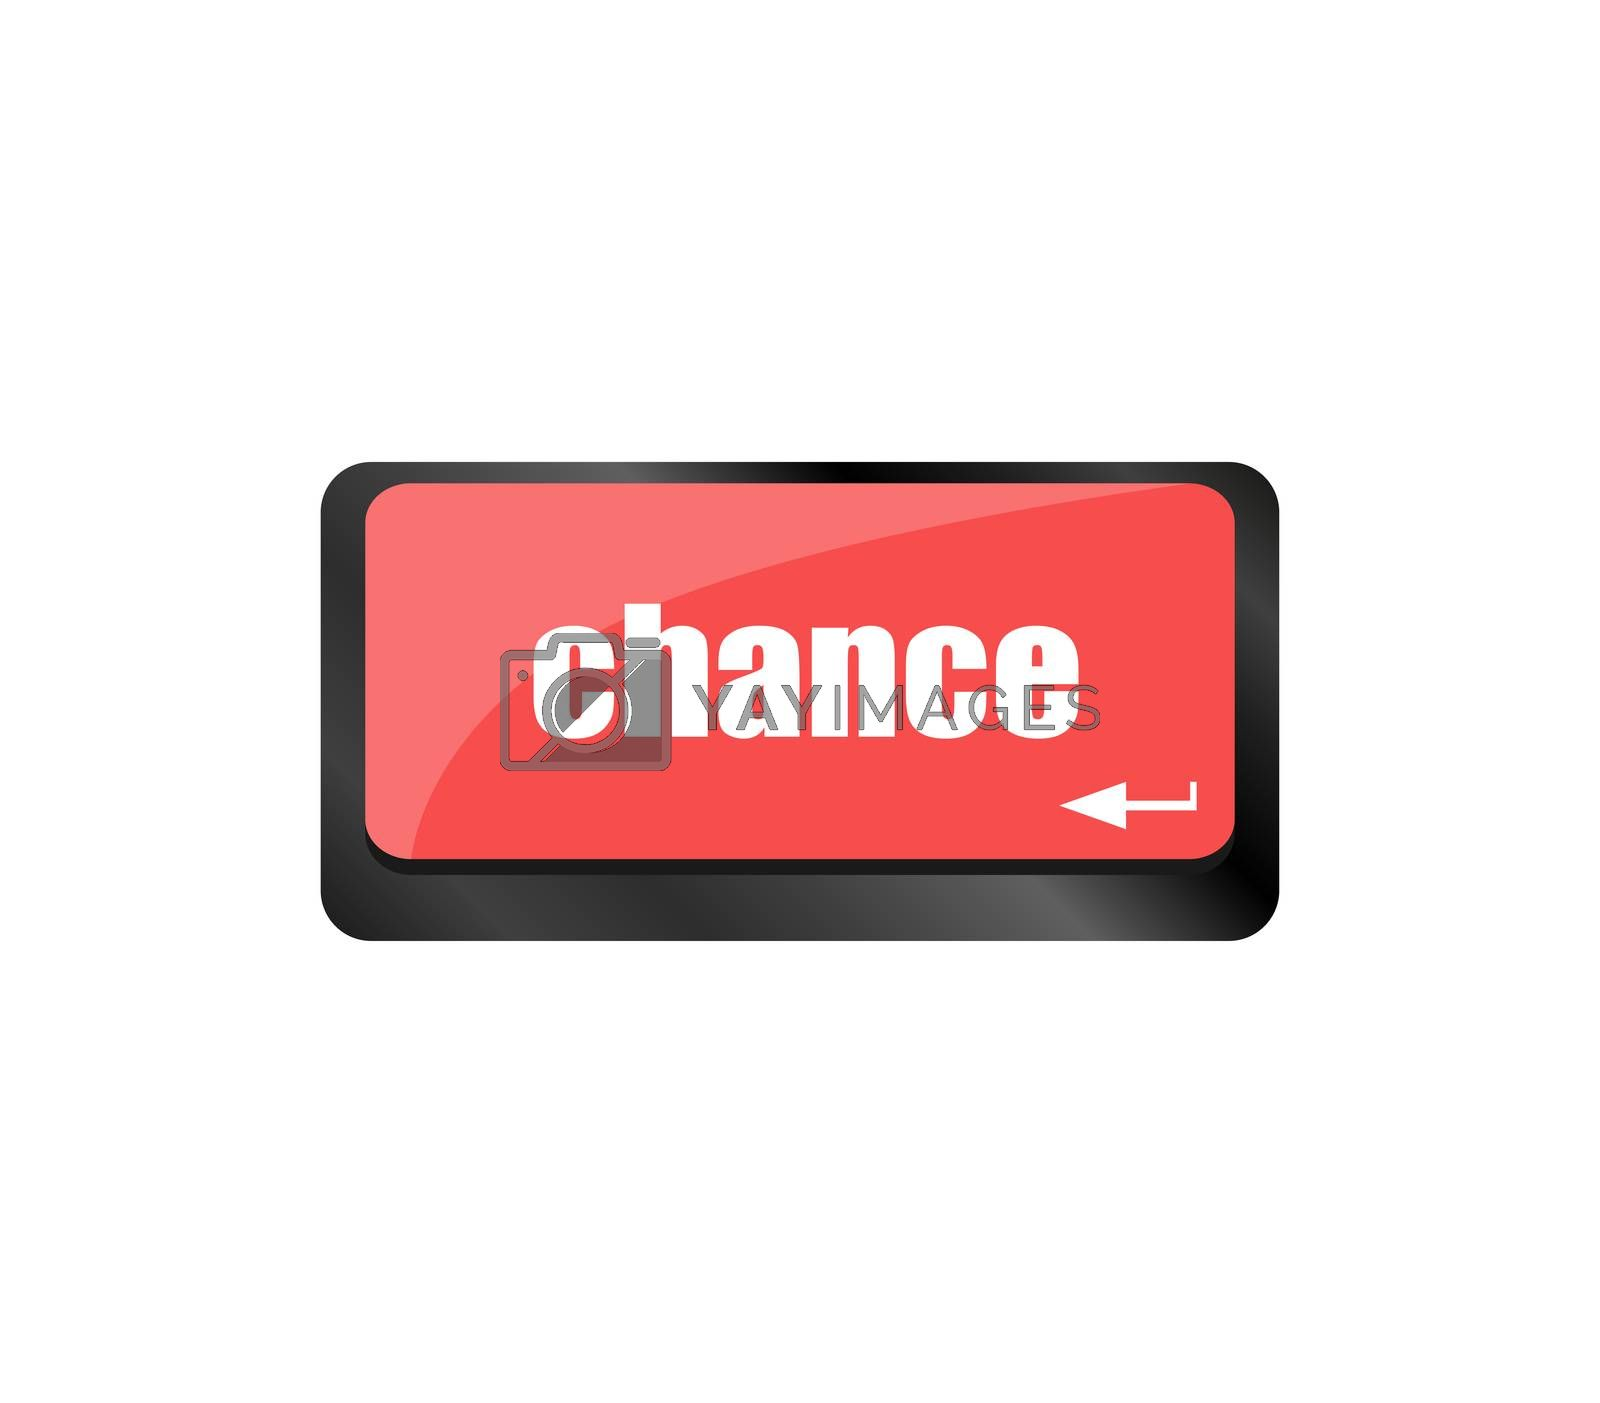 chance enter button on computer keyboard key